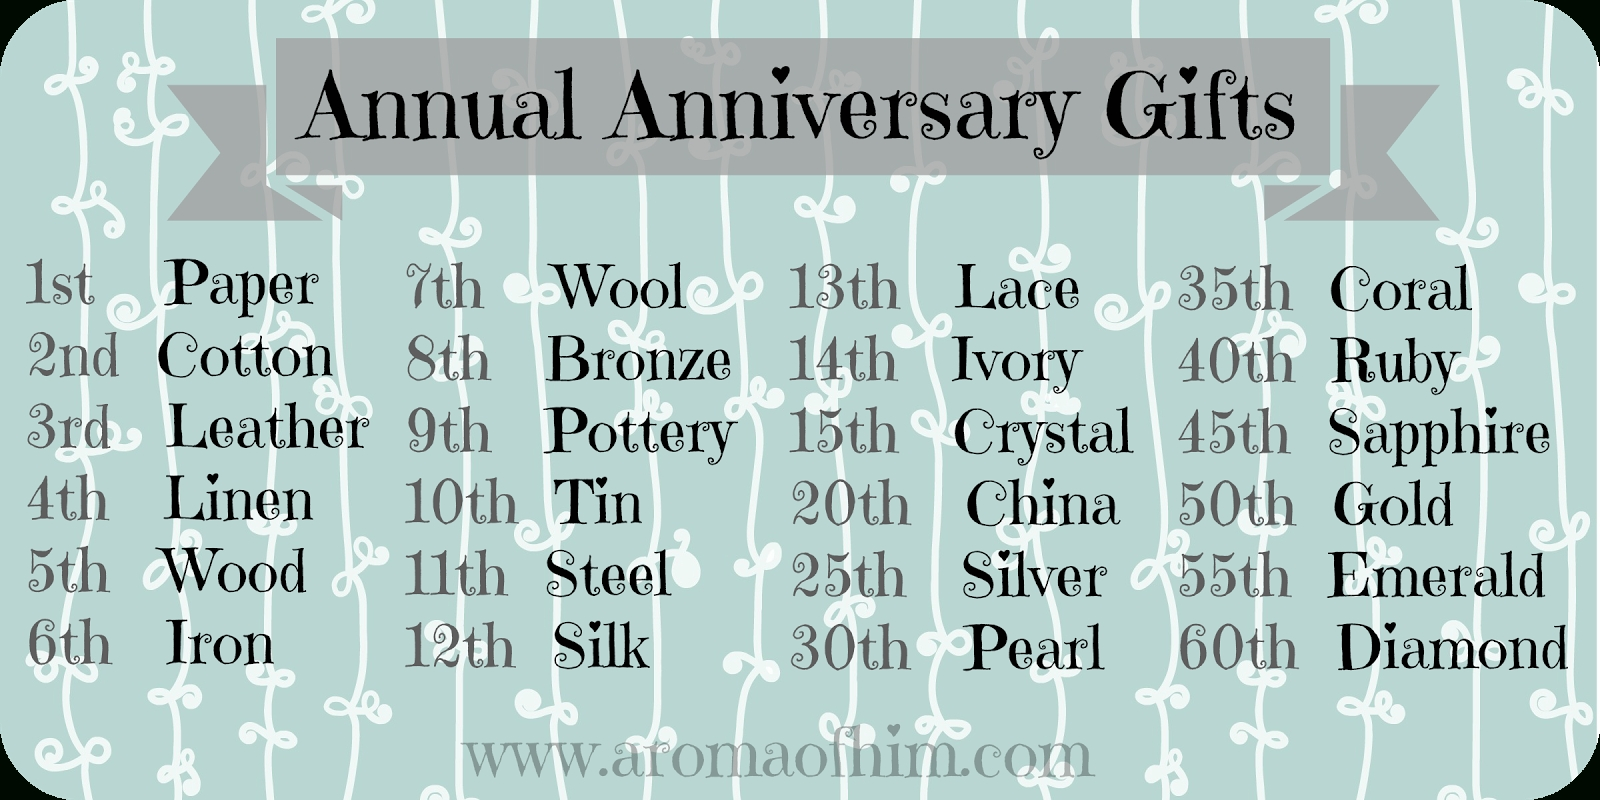 10 Lovely 2 Year Wedding Anniversary Ideas 2 year wedding anniversary amazing 2 year wedding anniversary gifts 2021